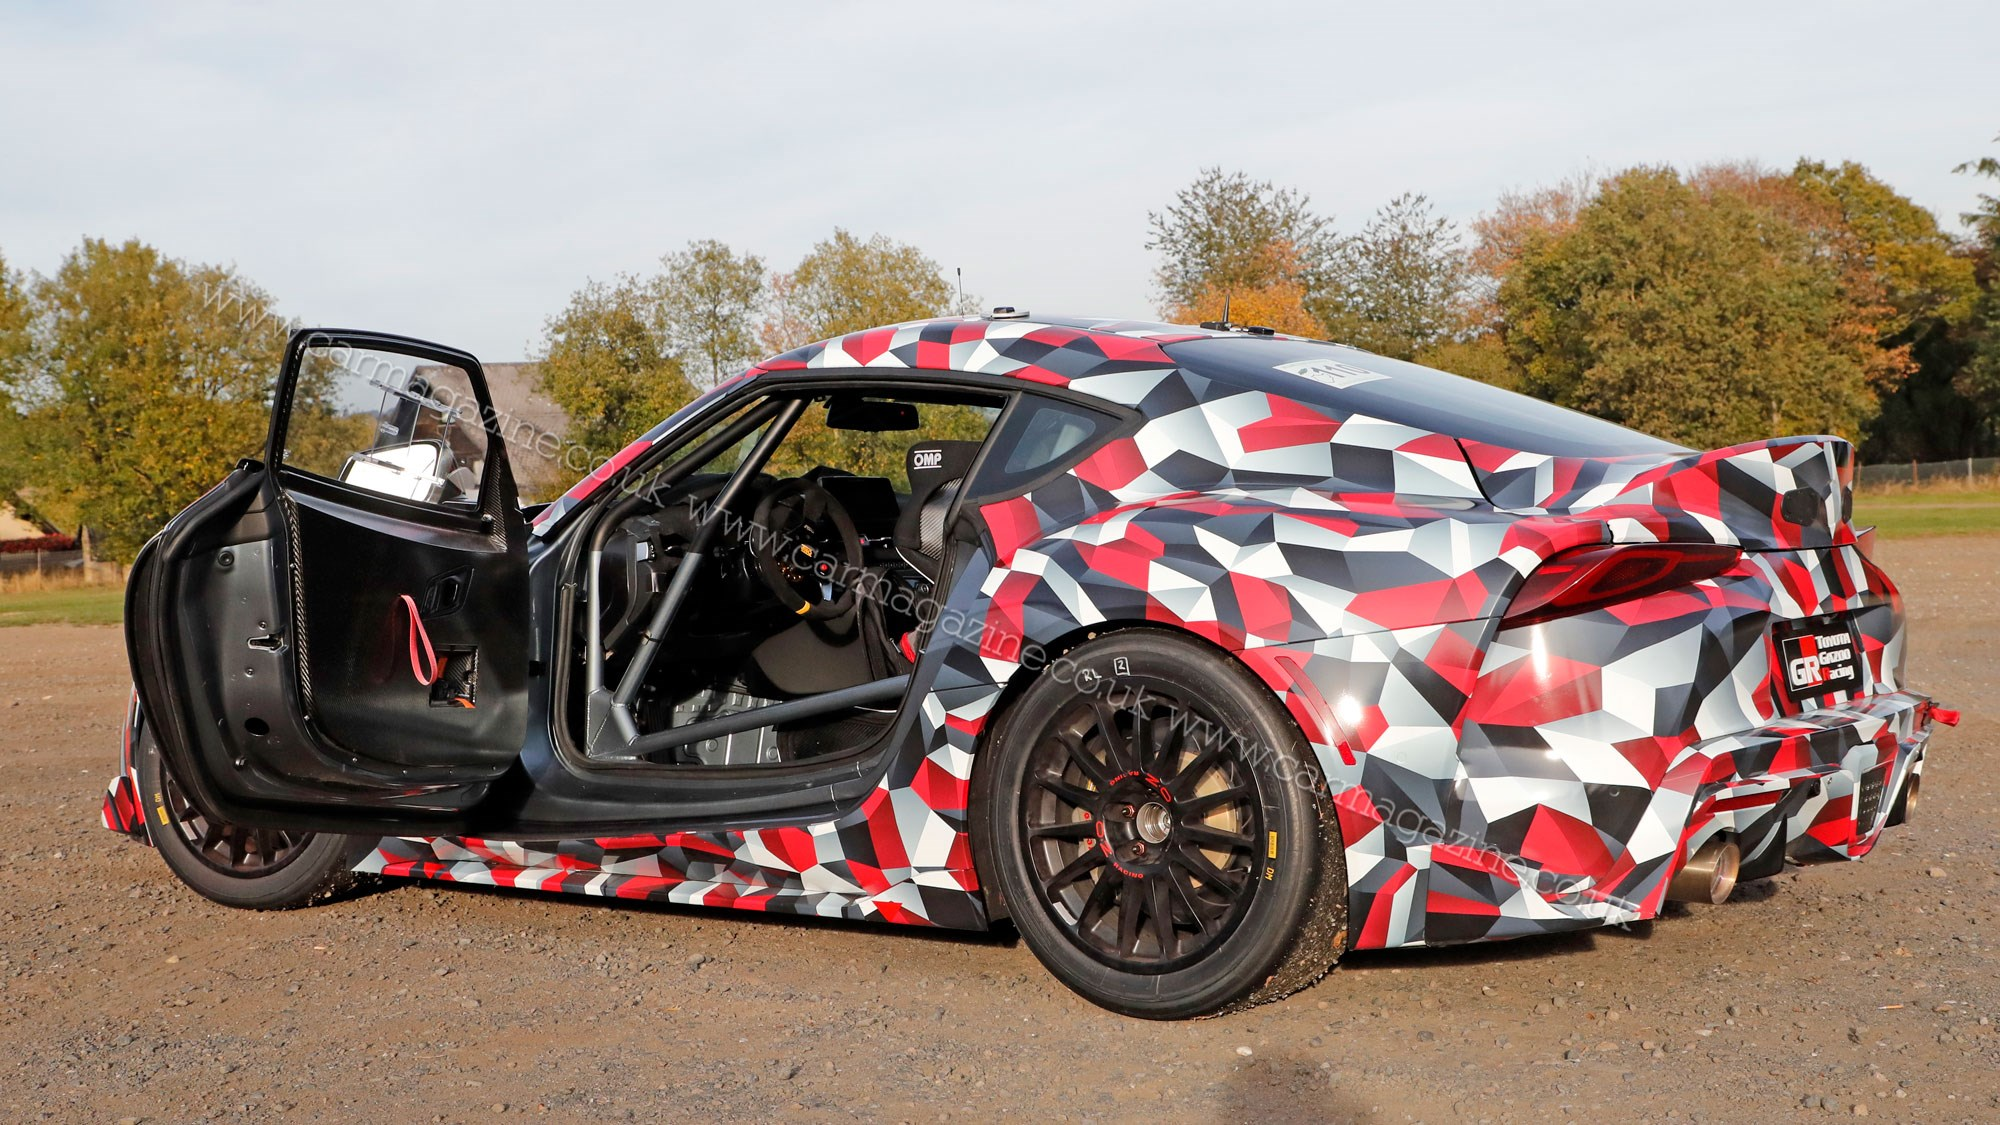 New Toyota Supra Revealed Fresh Pictures Emerge As UK Preorders - Goodwood hardware car show